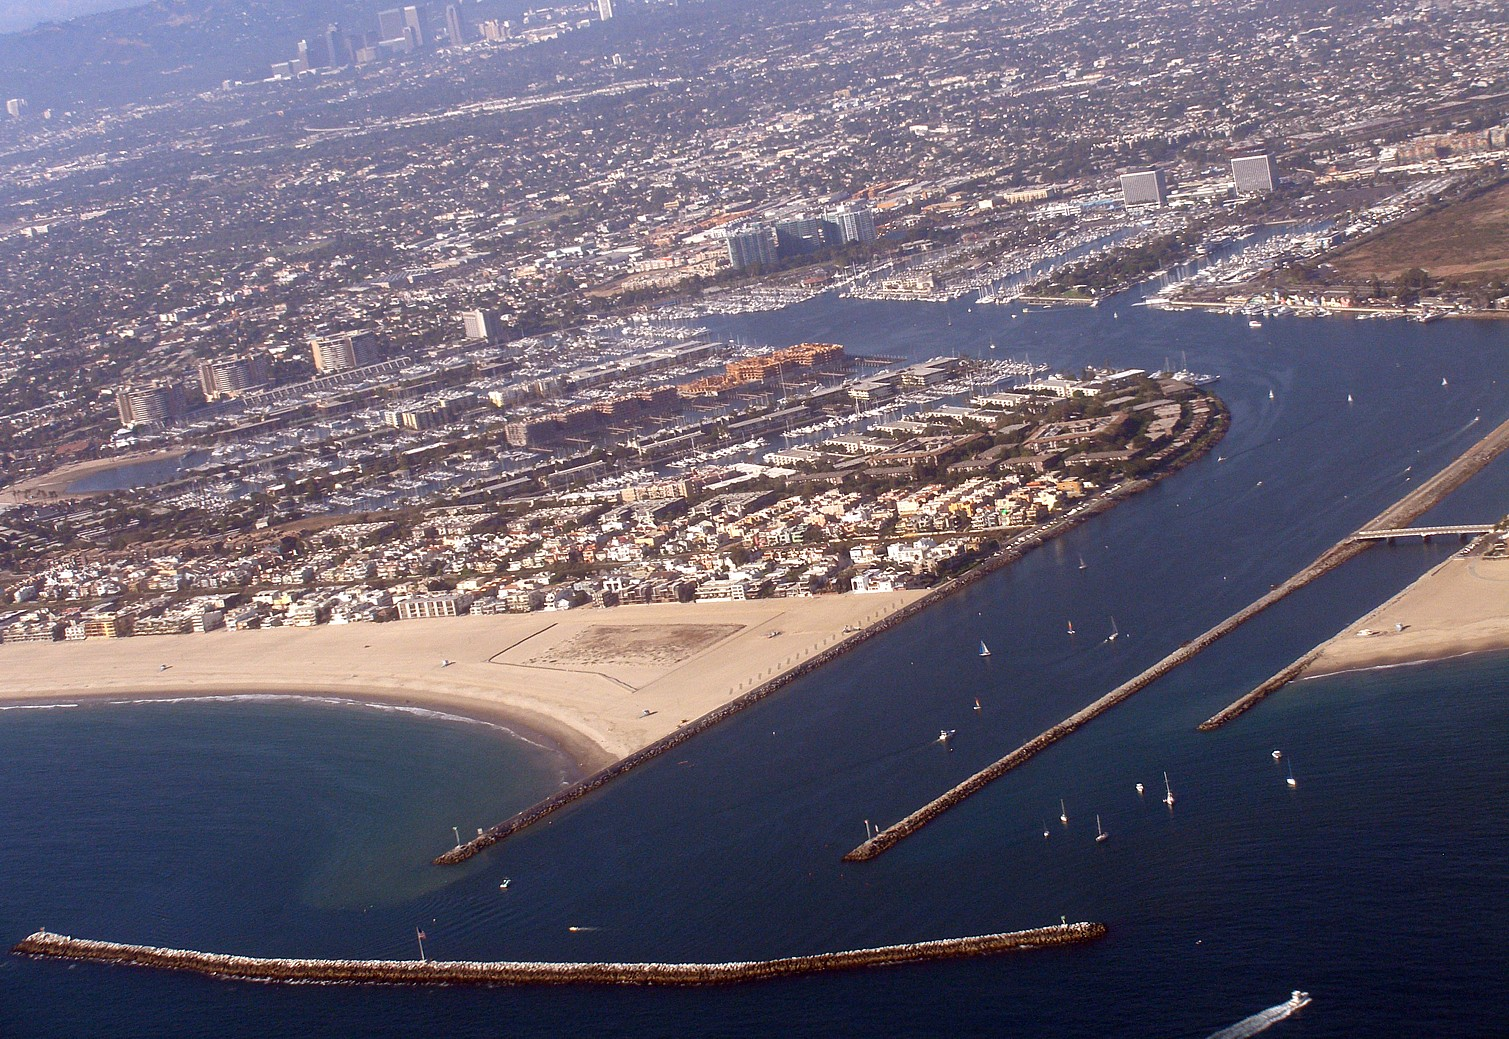 2000′ Over Marina Del Rey, California – Aerial Time Lapse Kite Photography – Marina del Rey Real Estate – MDR Condos